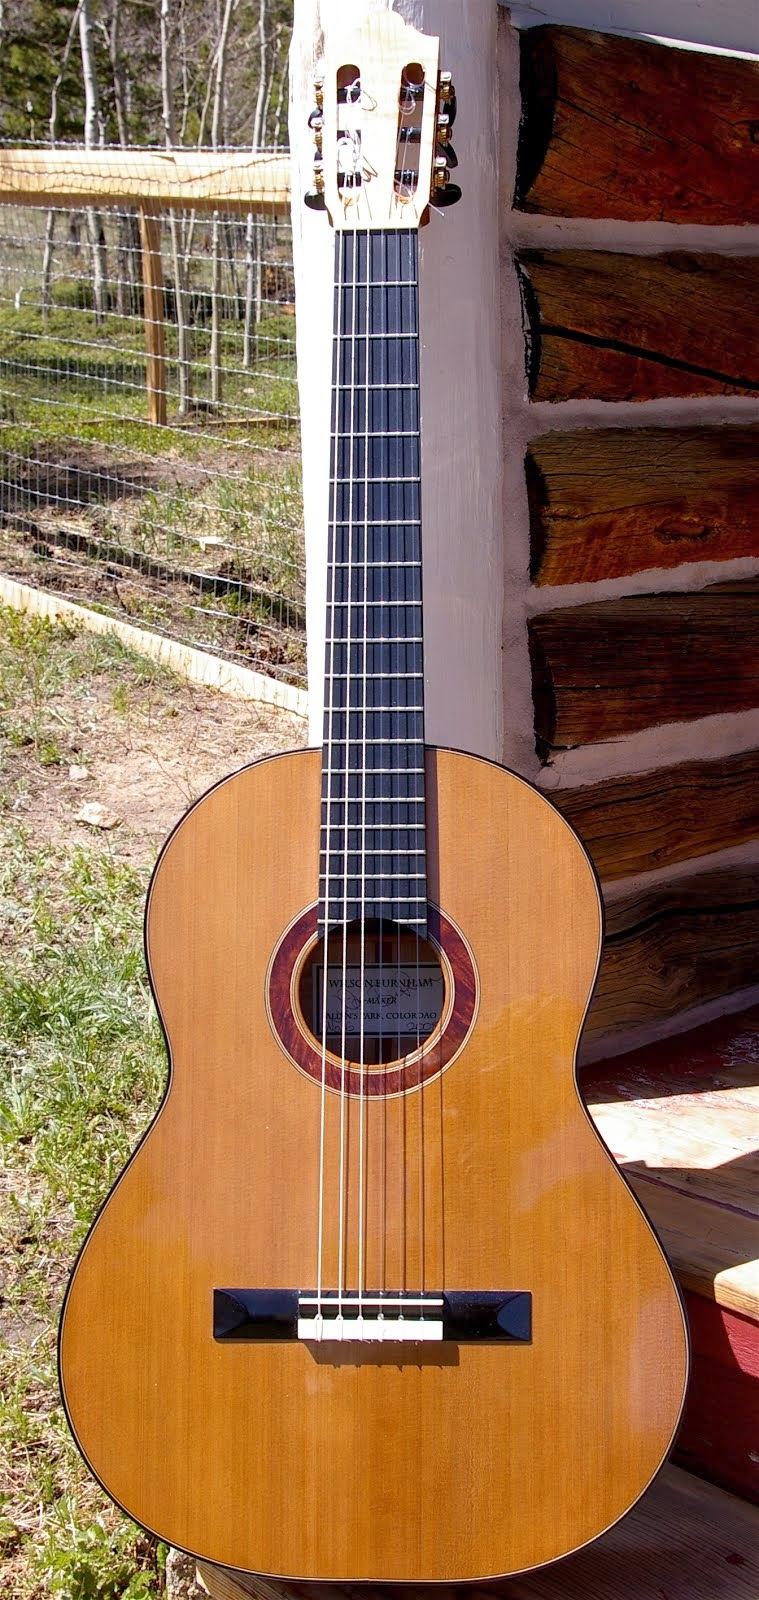 Sold: 1968 Hernandez y Aguado Model Guitar